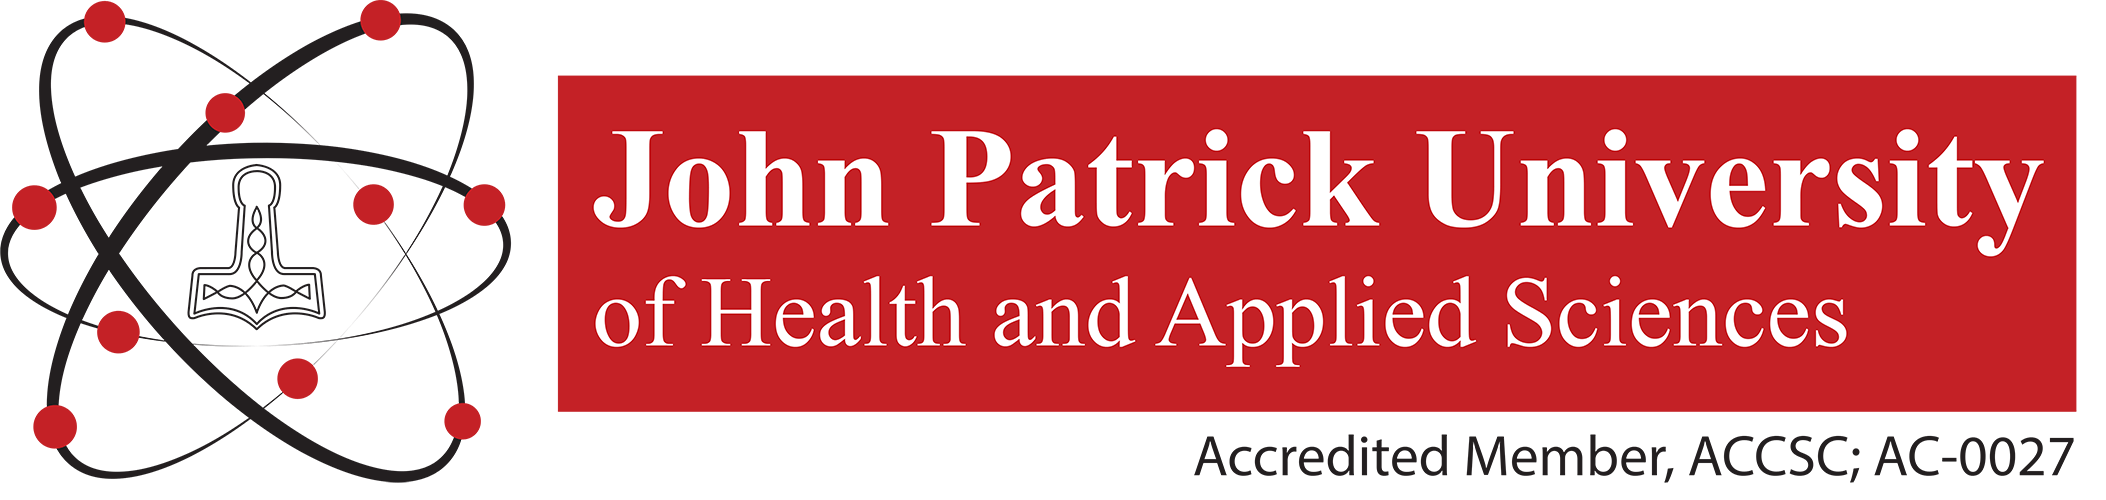 John Patrick University of Health and Applied Sciences